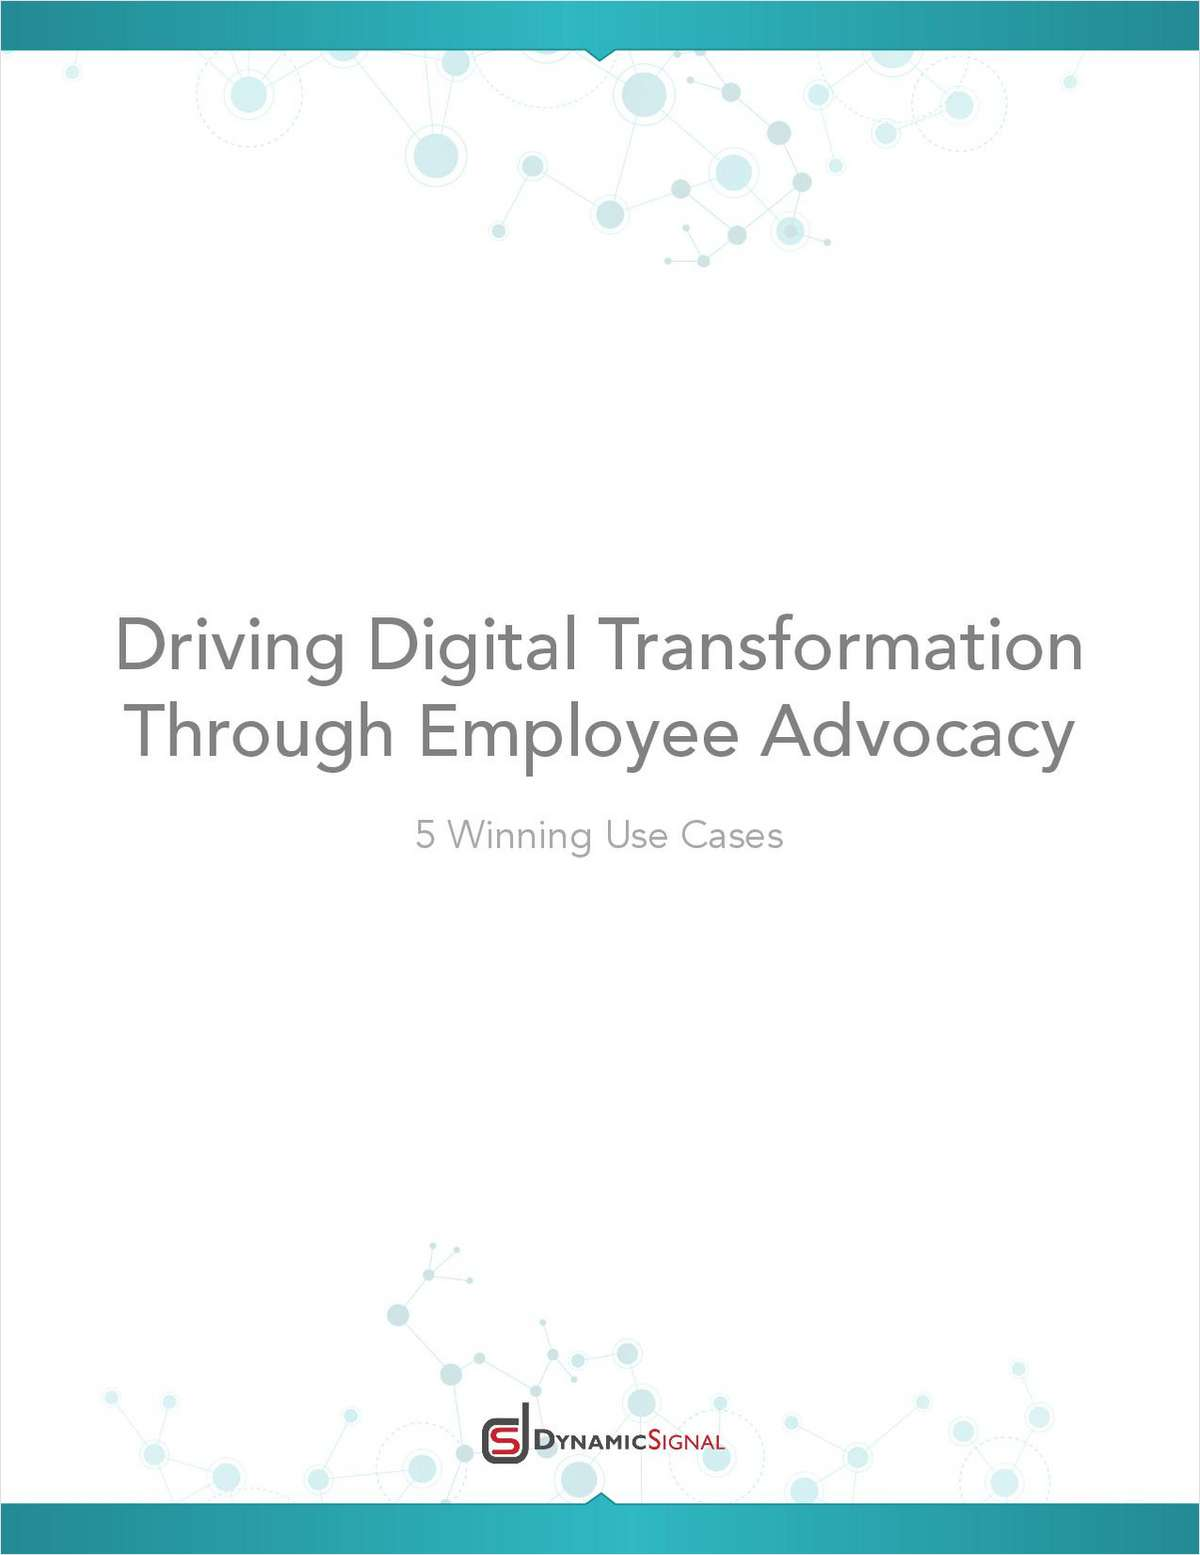 Driving Digital Transformation Through Employee Advocacy